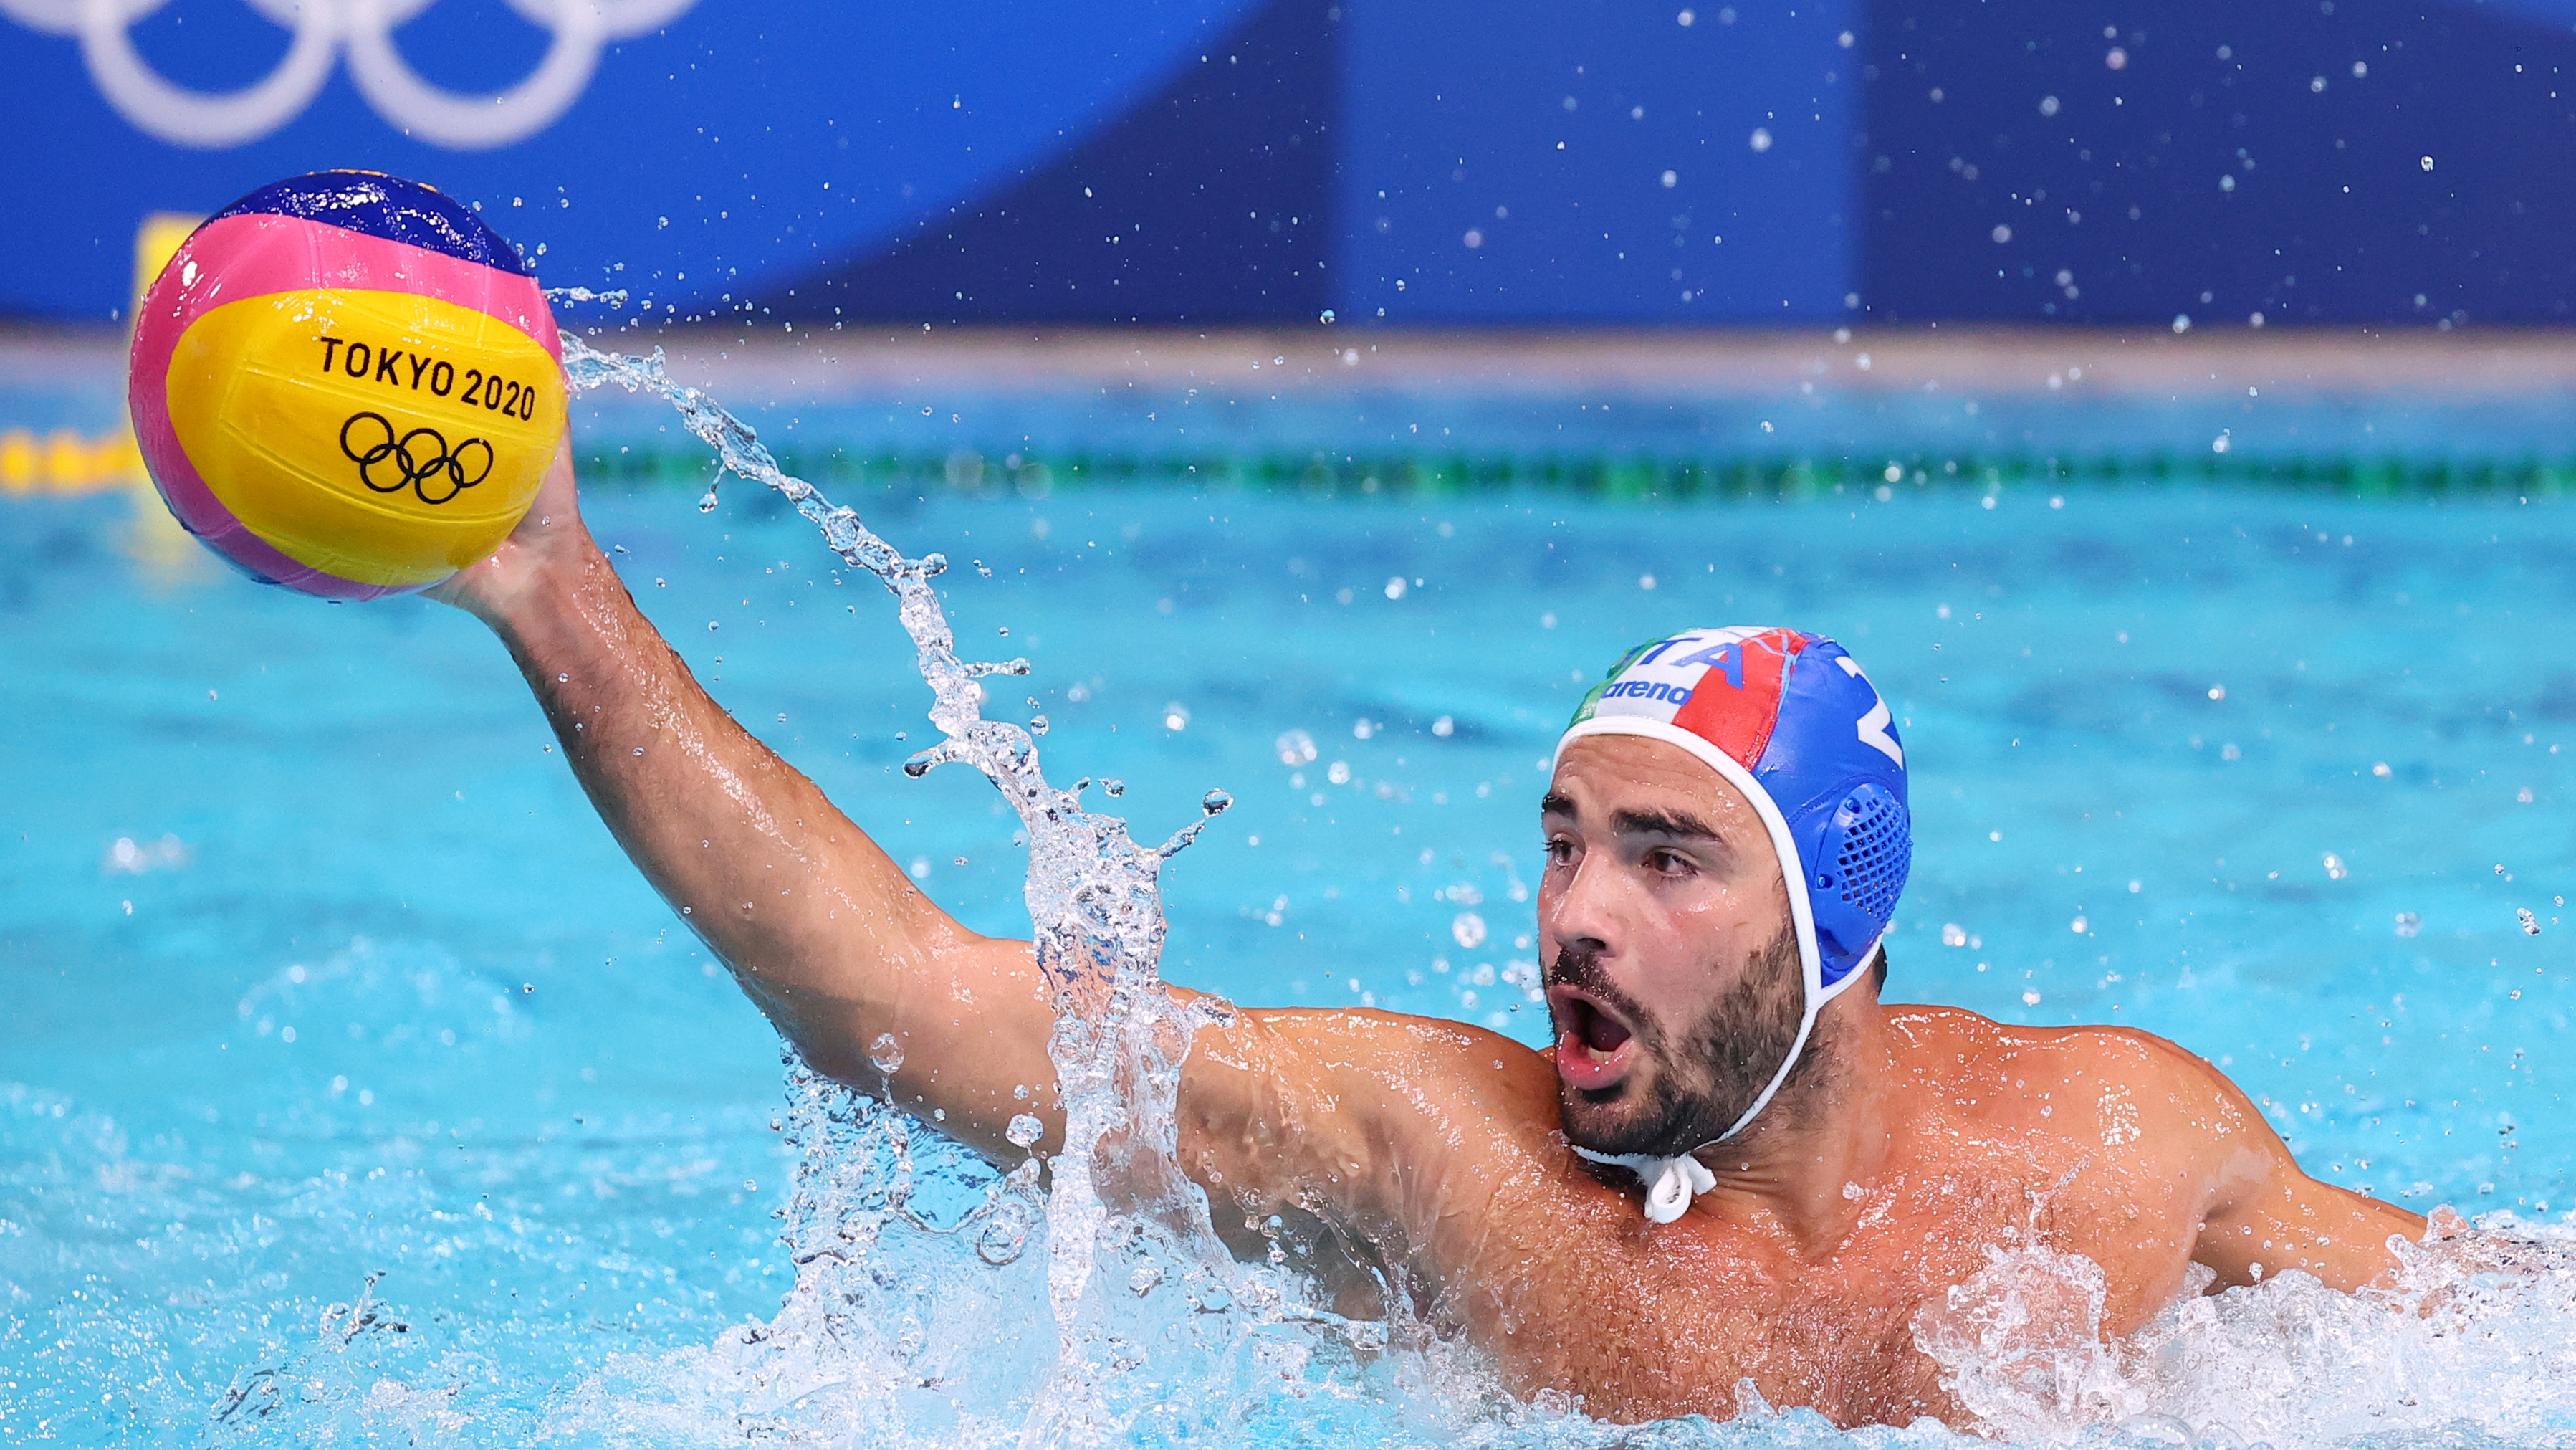 Tokyo 2020 Olympics - Water Polo - Men - Group A - United States v Italy - Tatsumi Water Polo Centre, Tokyo, Japan - July 29, 2021. Francesco Di Fulvio of Italy in action. REUTERS/Kacper Pempel